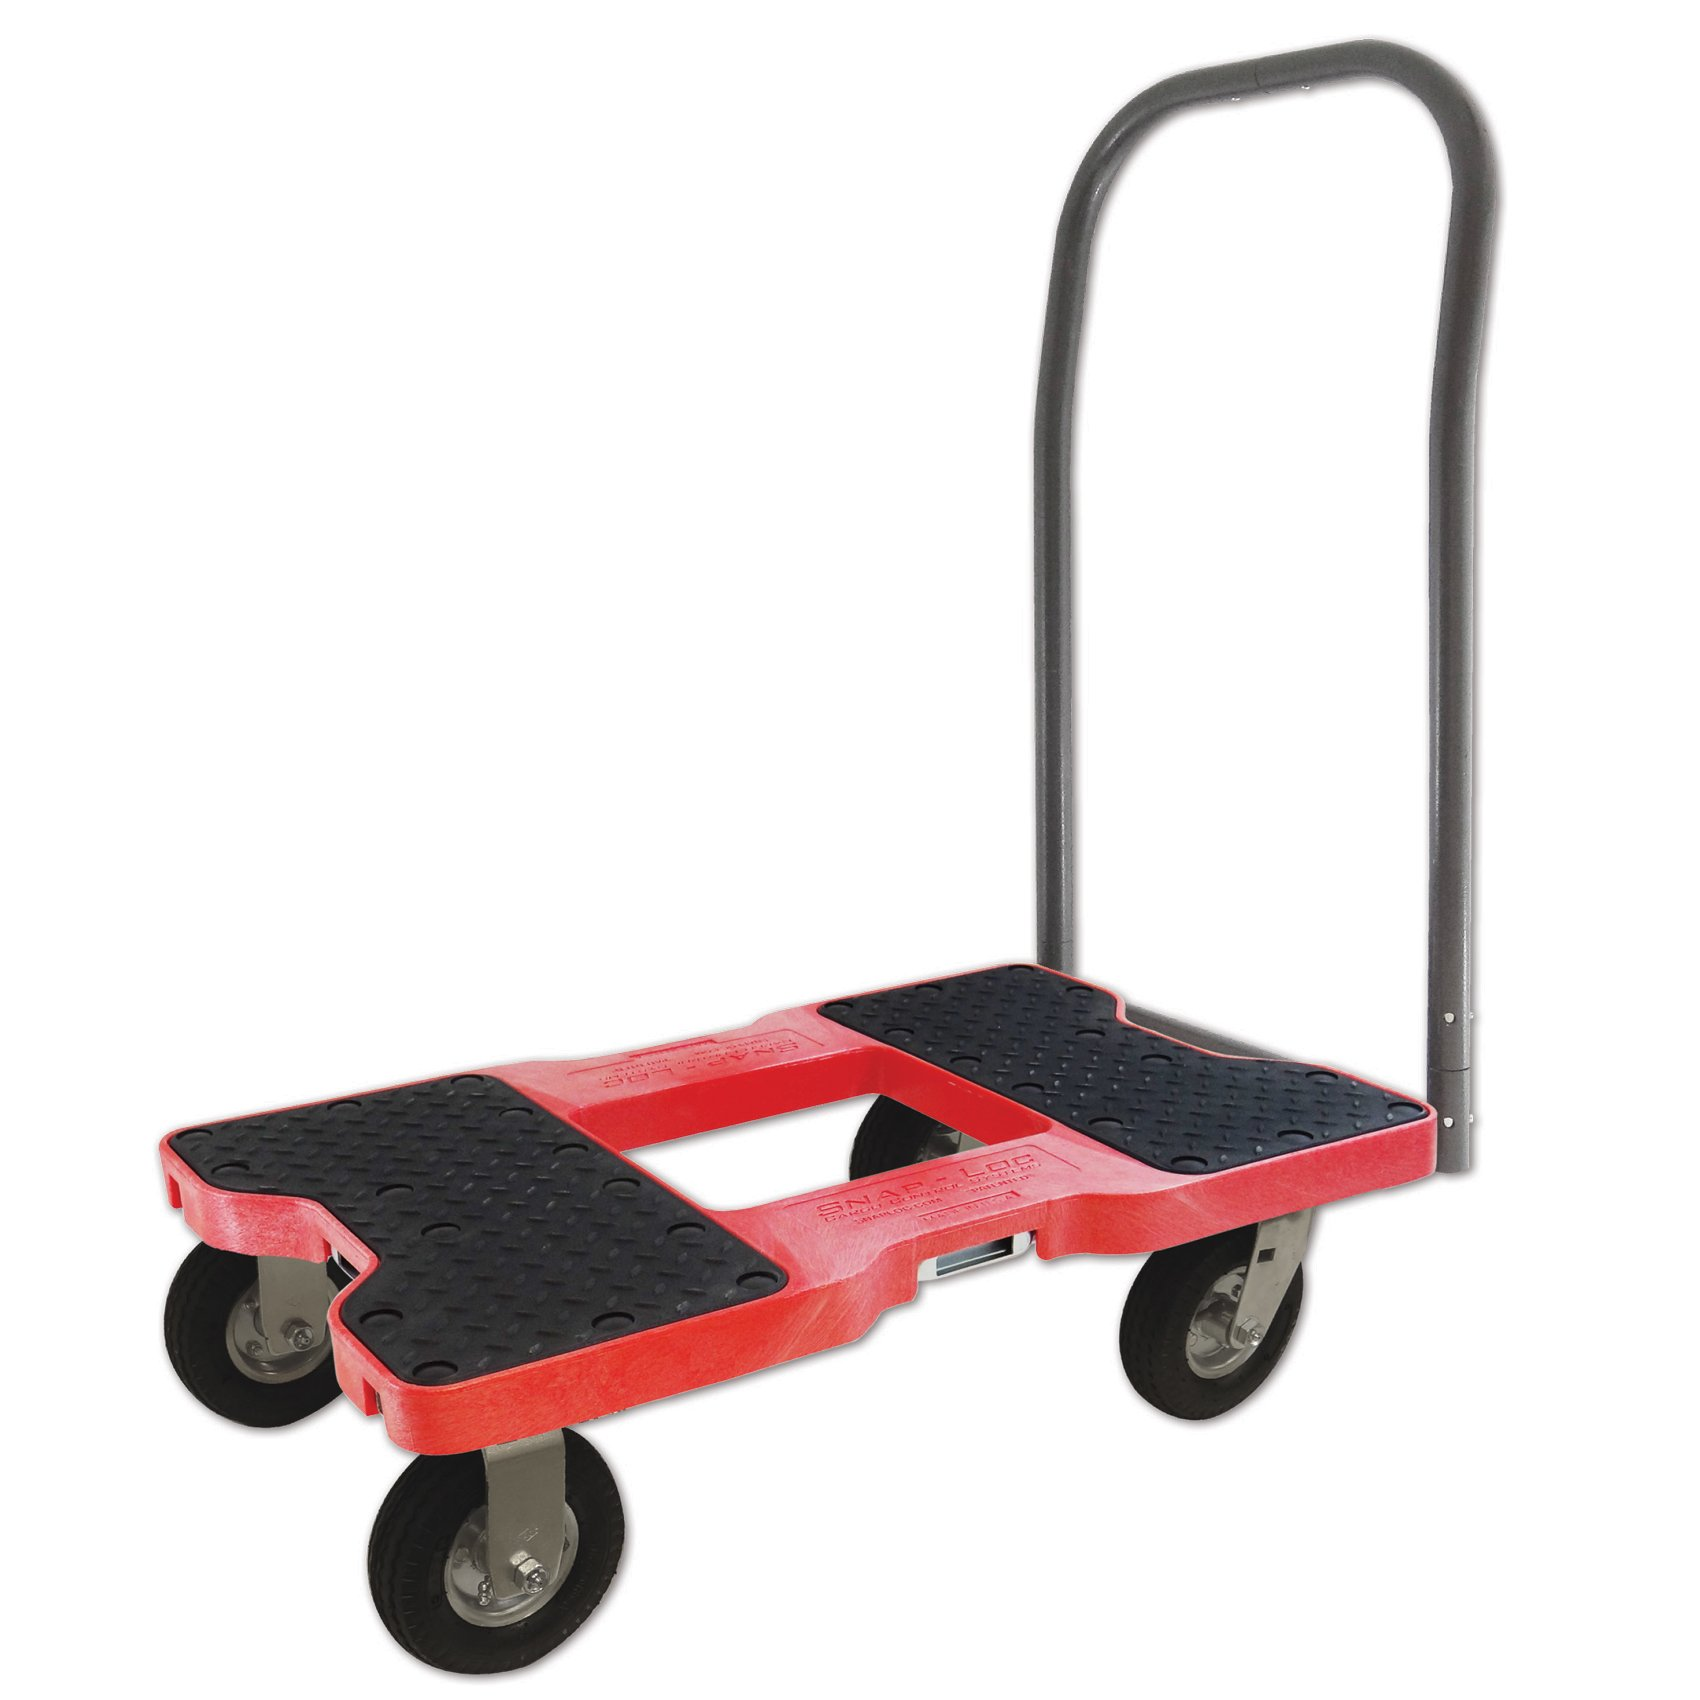 SNAP-LOC AIR-RIDE PUSH CART DOLLY RED with 1500 lb Capacity, Steel Frame, 6 inch Casters, Push Bar and optional E-Strap Attachment